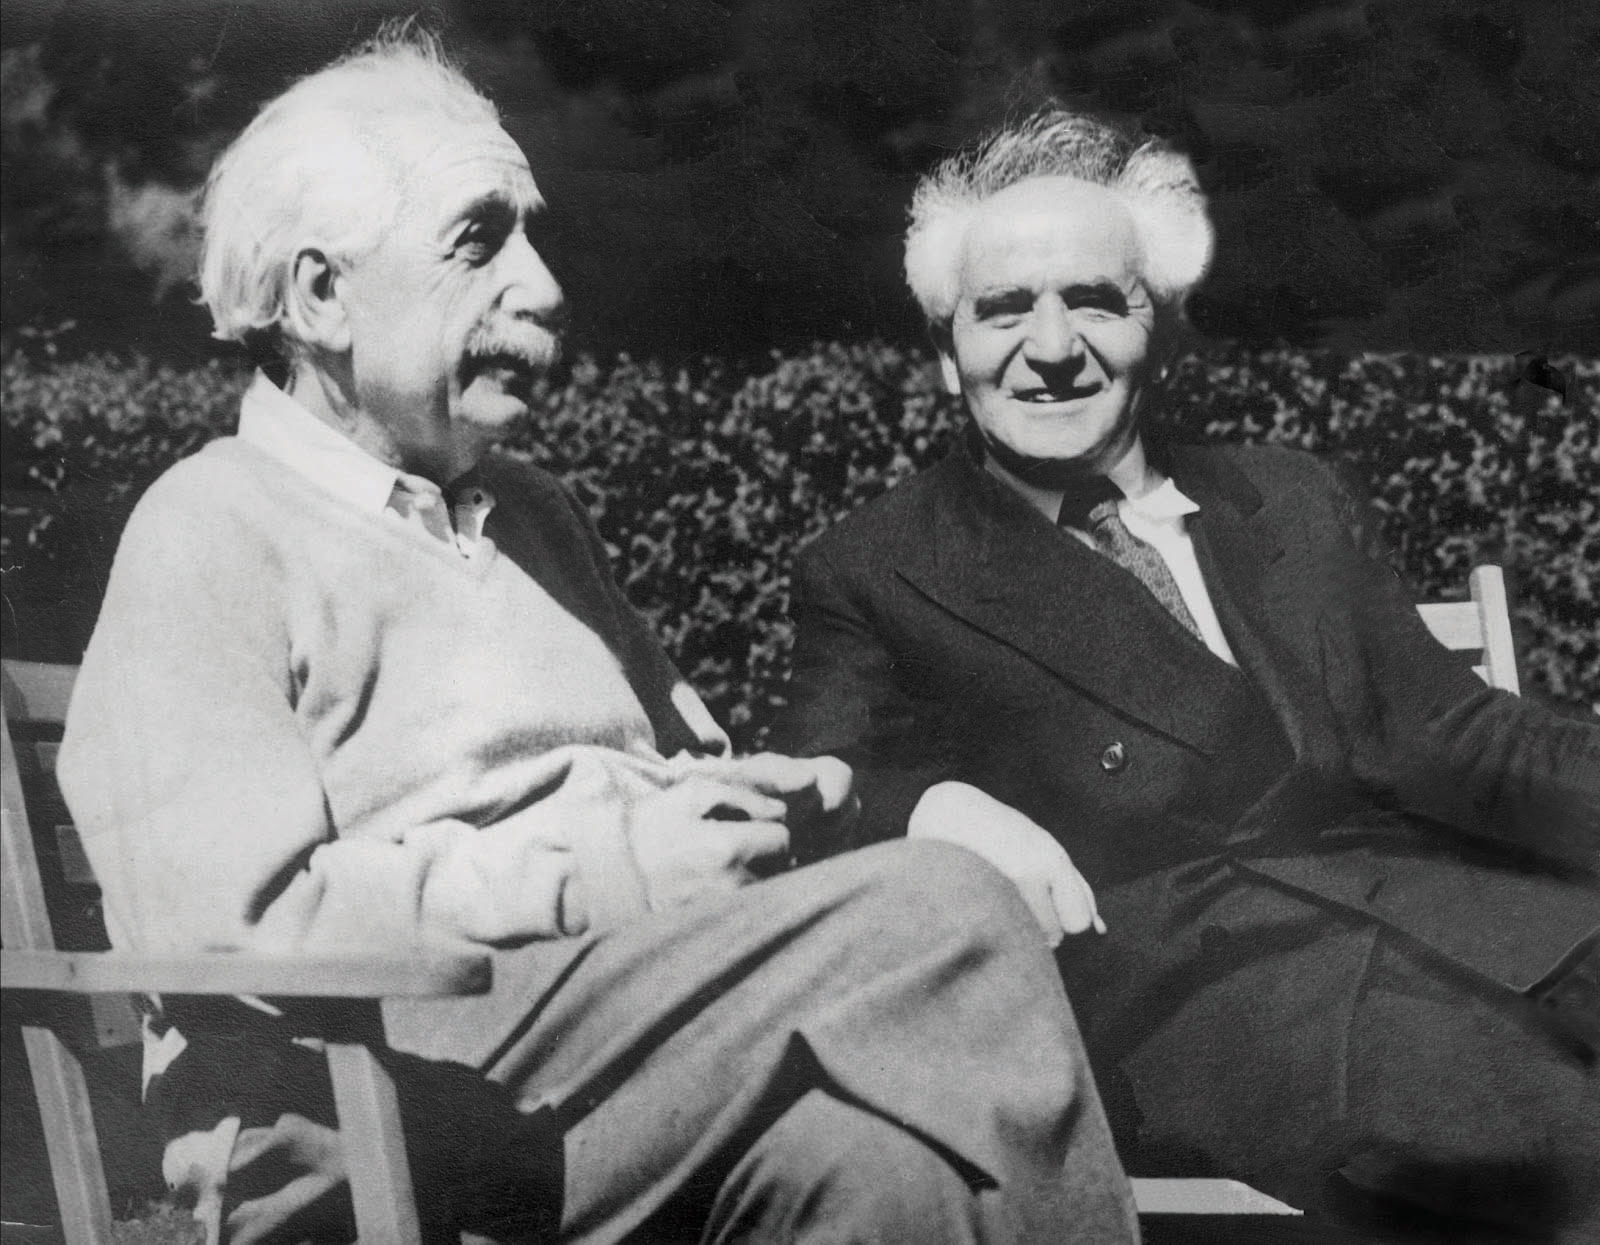 Einstein was very public about his Zionism, although it never became practical. With Ben-Gurion at Princeton, May 13, 1951